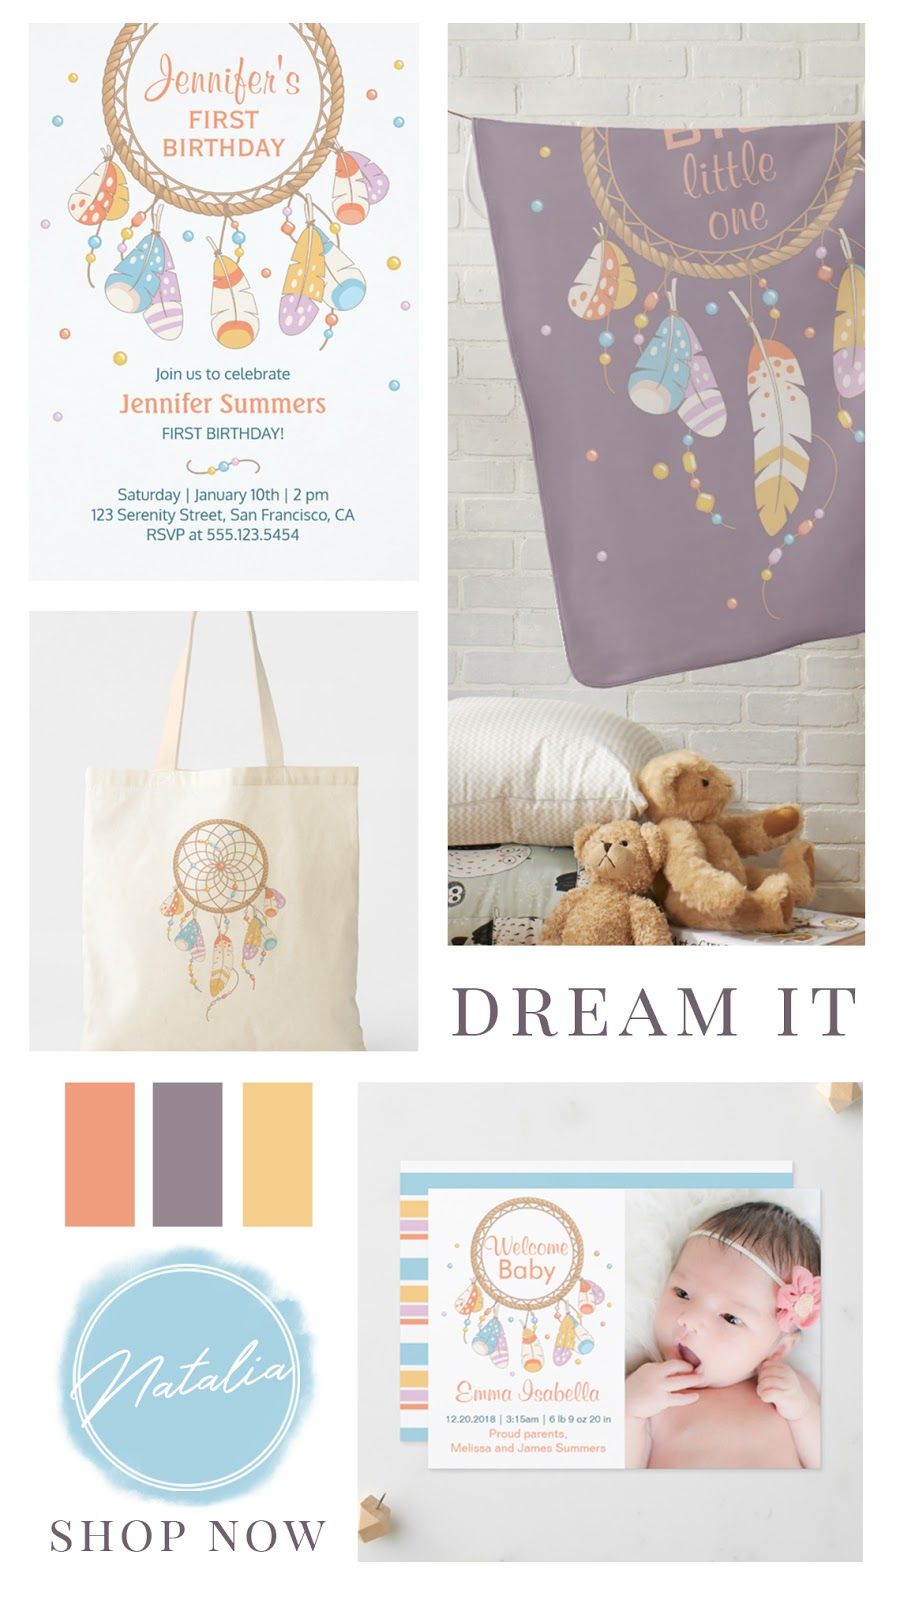 Boho chic dreamcatcher baby shower and birthday collection. Featuring personalized apparel, custom photo invites, gifts, and party favors. In a yellow, purple, orange, and blue color palette.